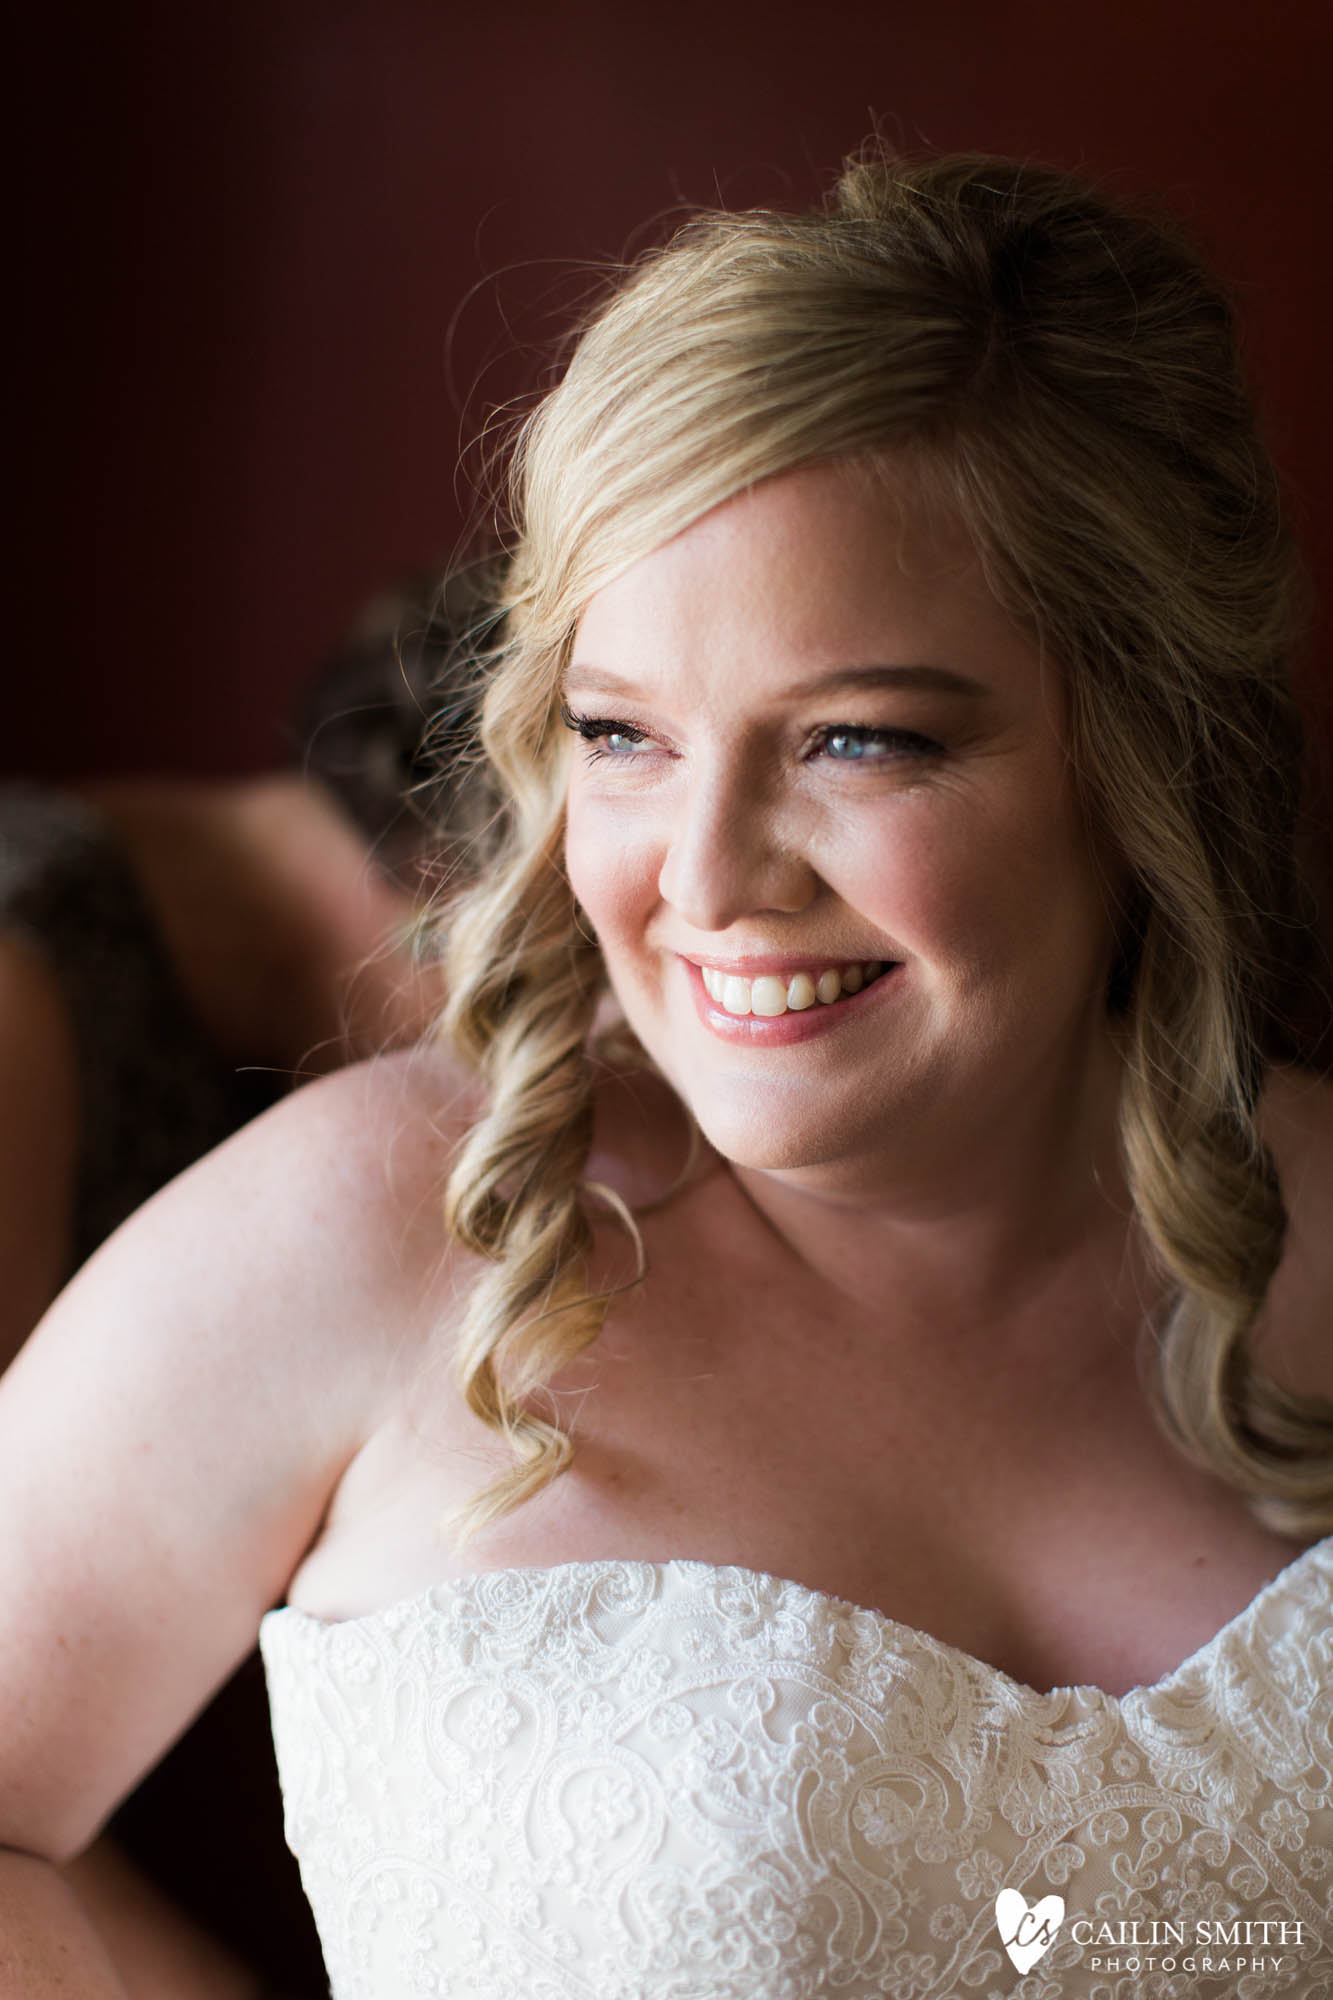 Christie_Nathan_Wedding_Photography_0010.jpg